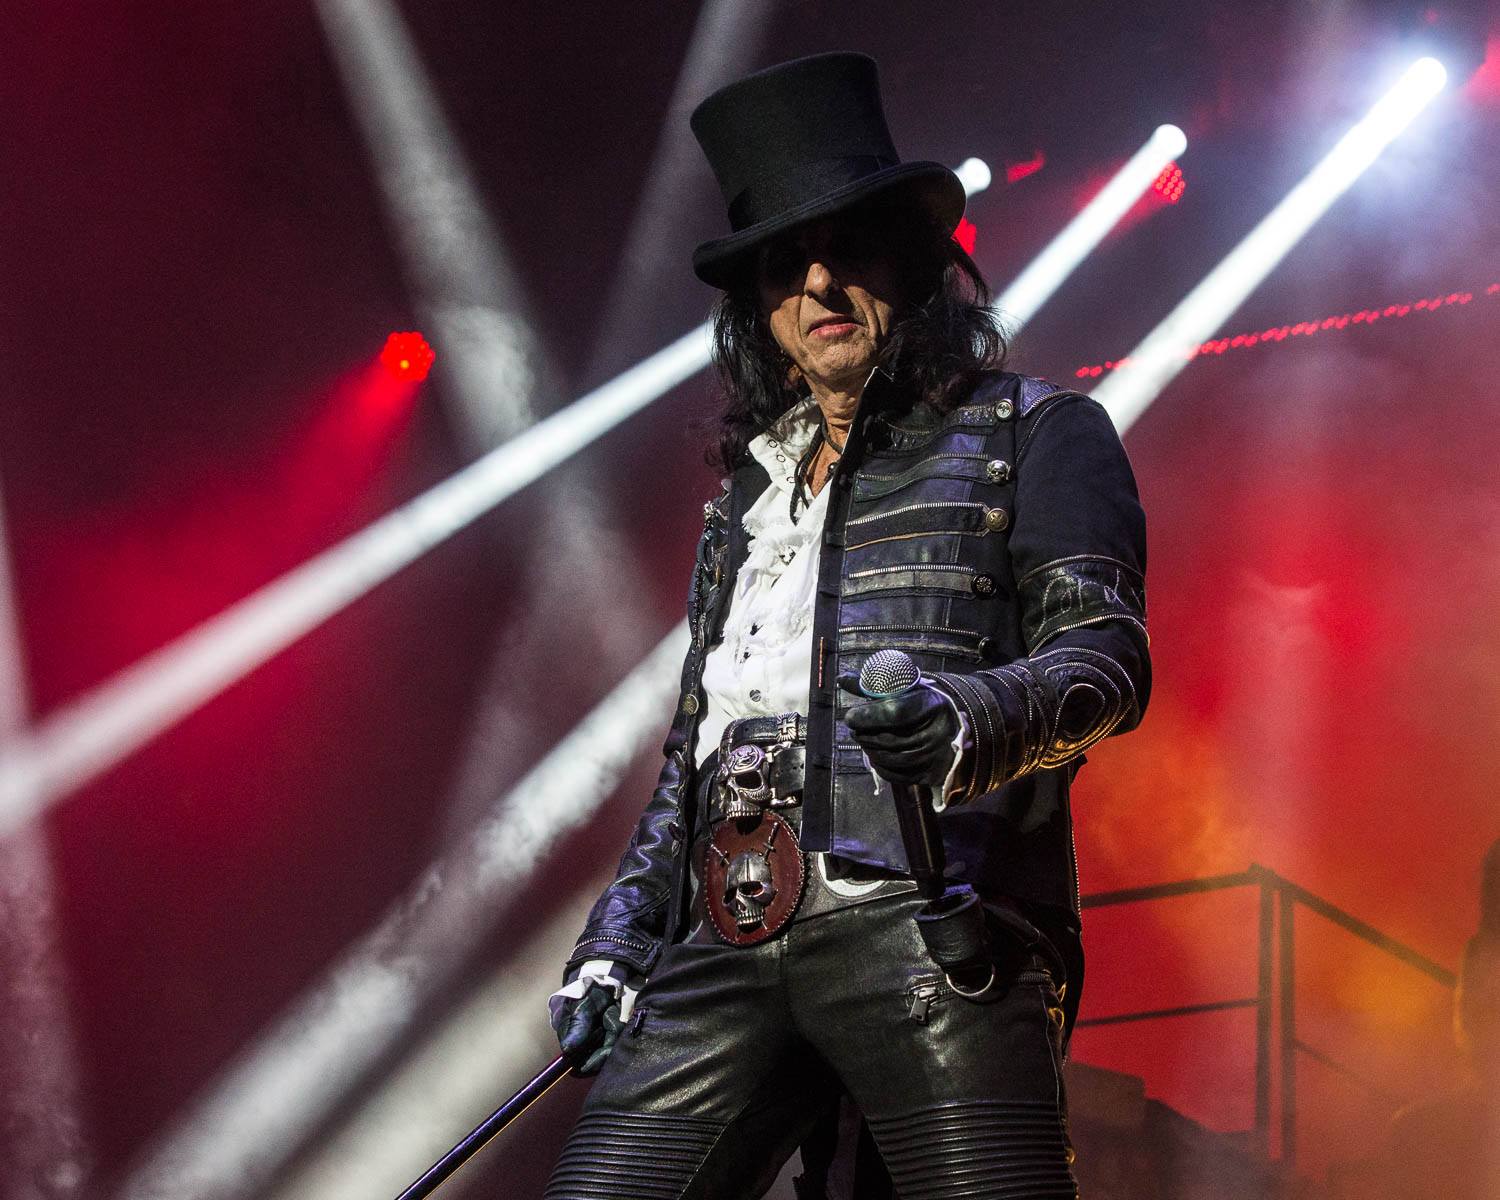 Alice Cooper performing at Starlight Theatre in Kansas City, Missouri on July 26, 2019.